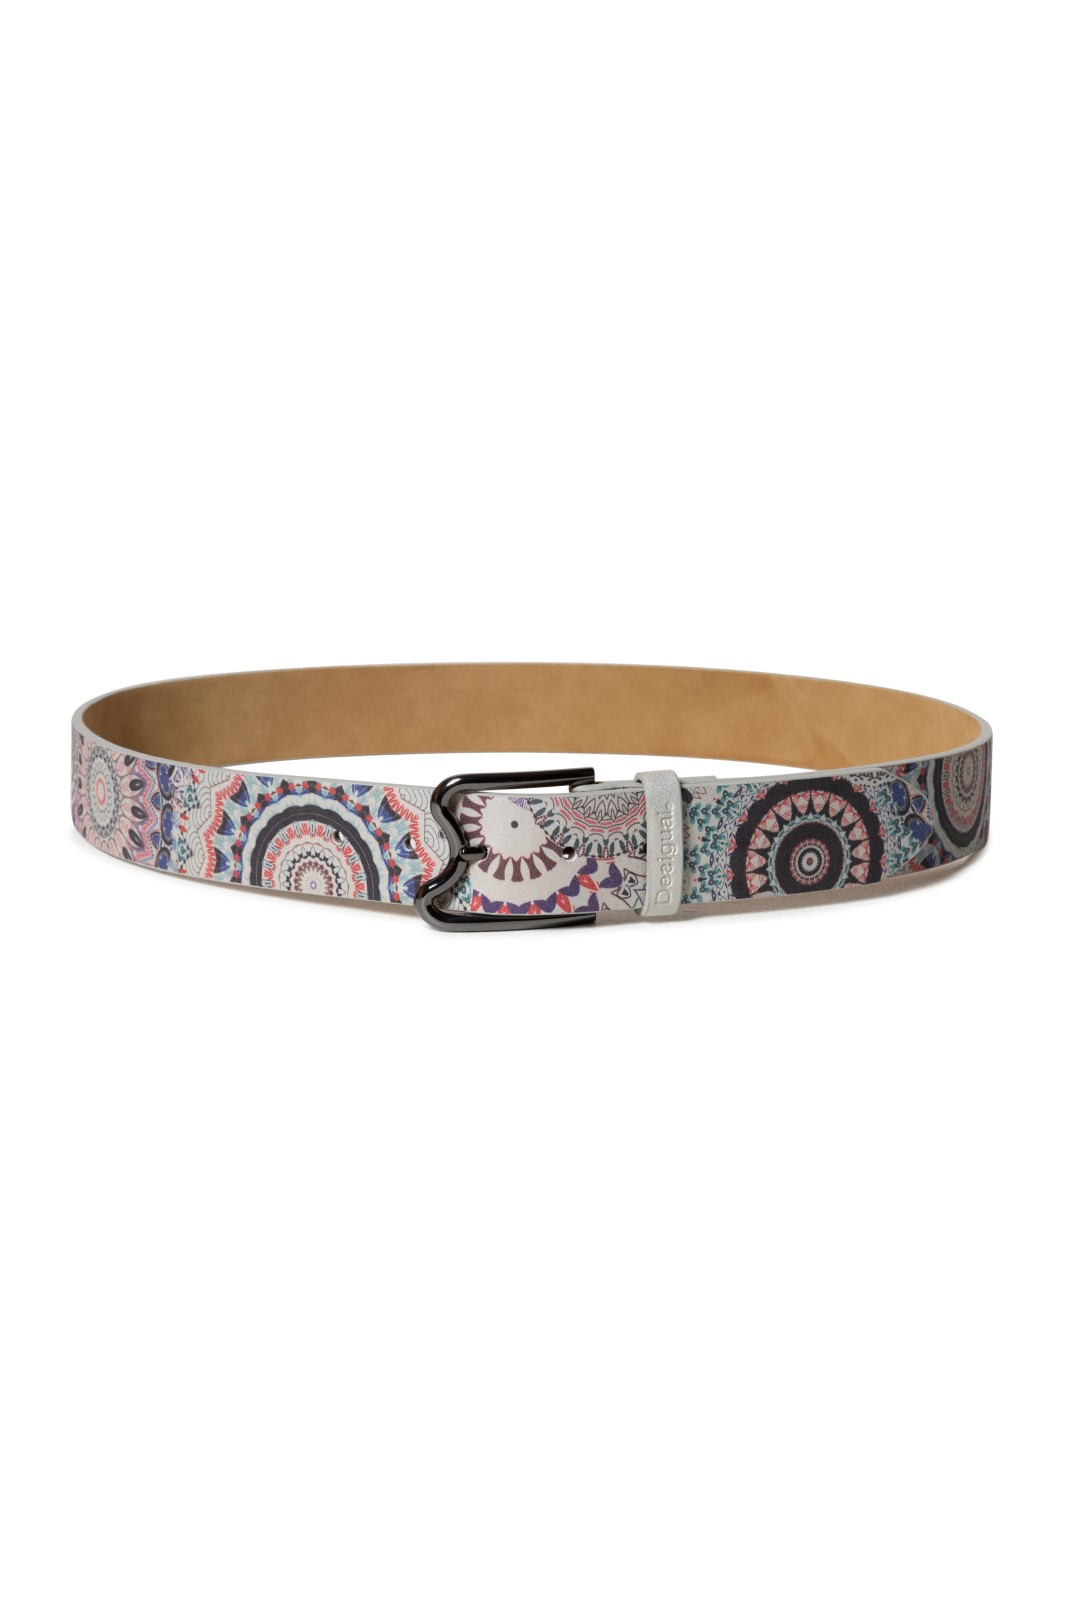 Desigual multicolor women belt Belt S.T.A.Y.